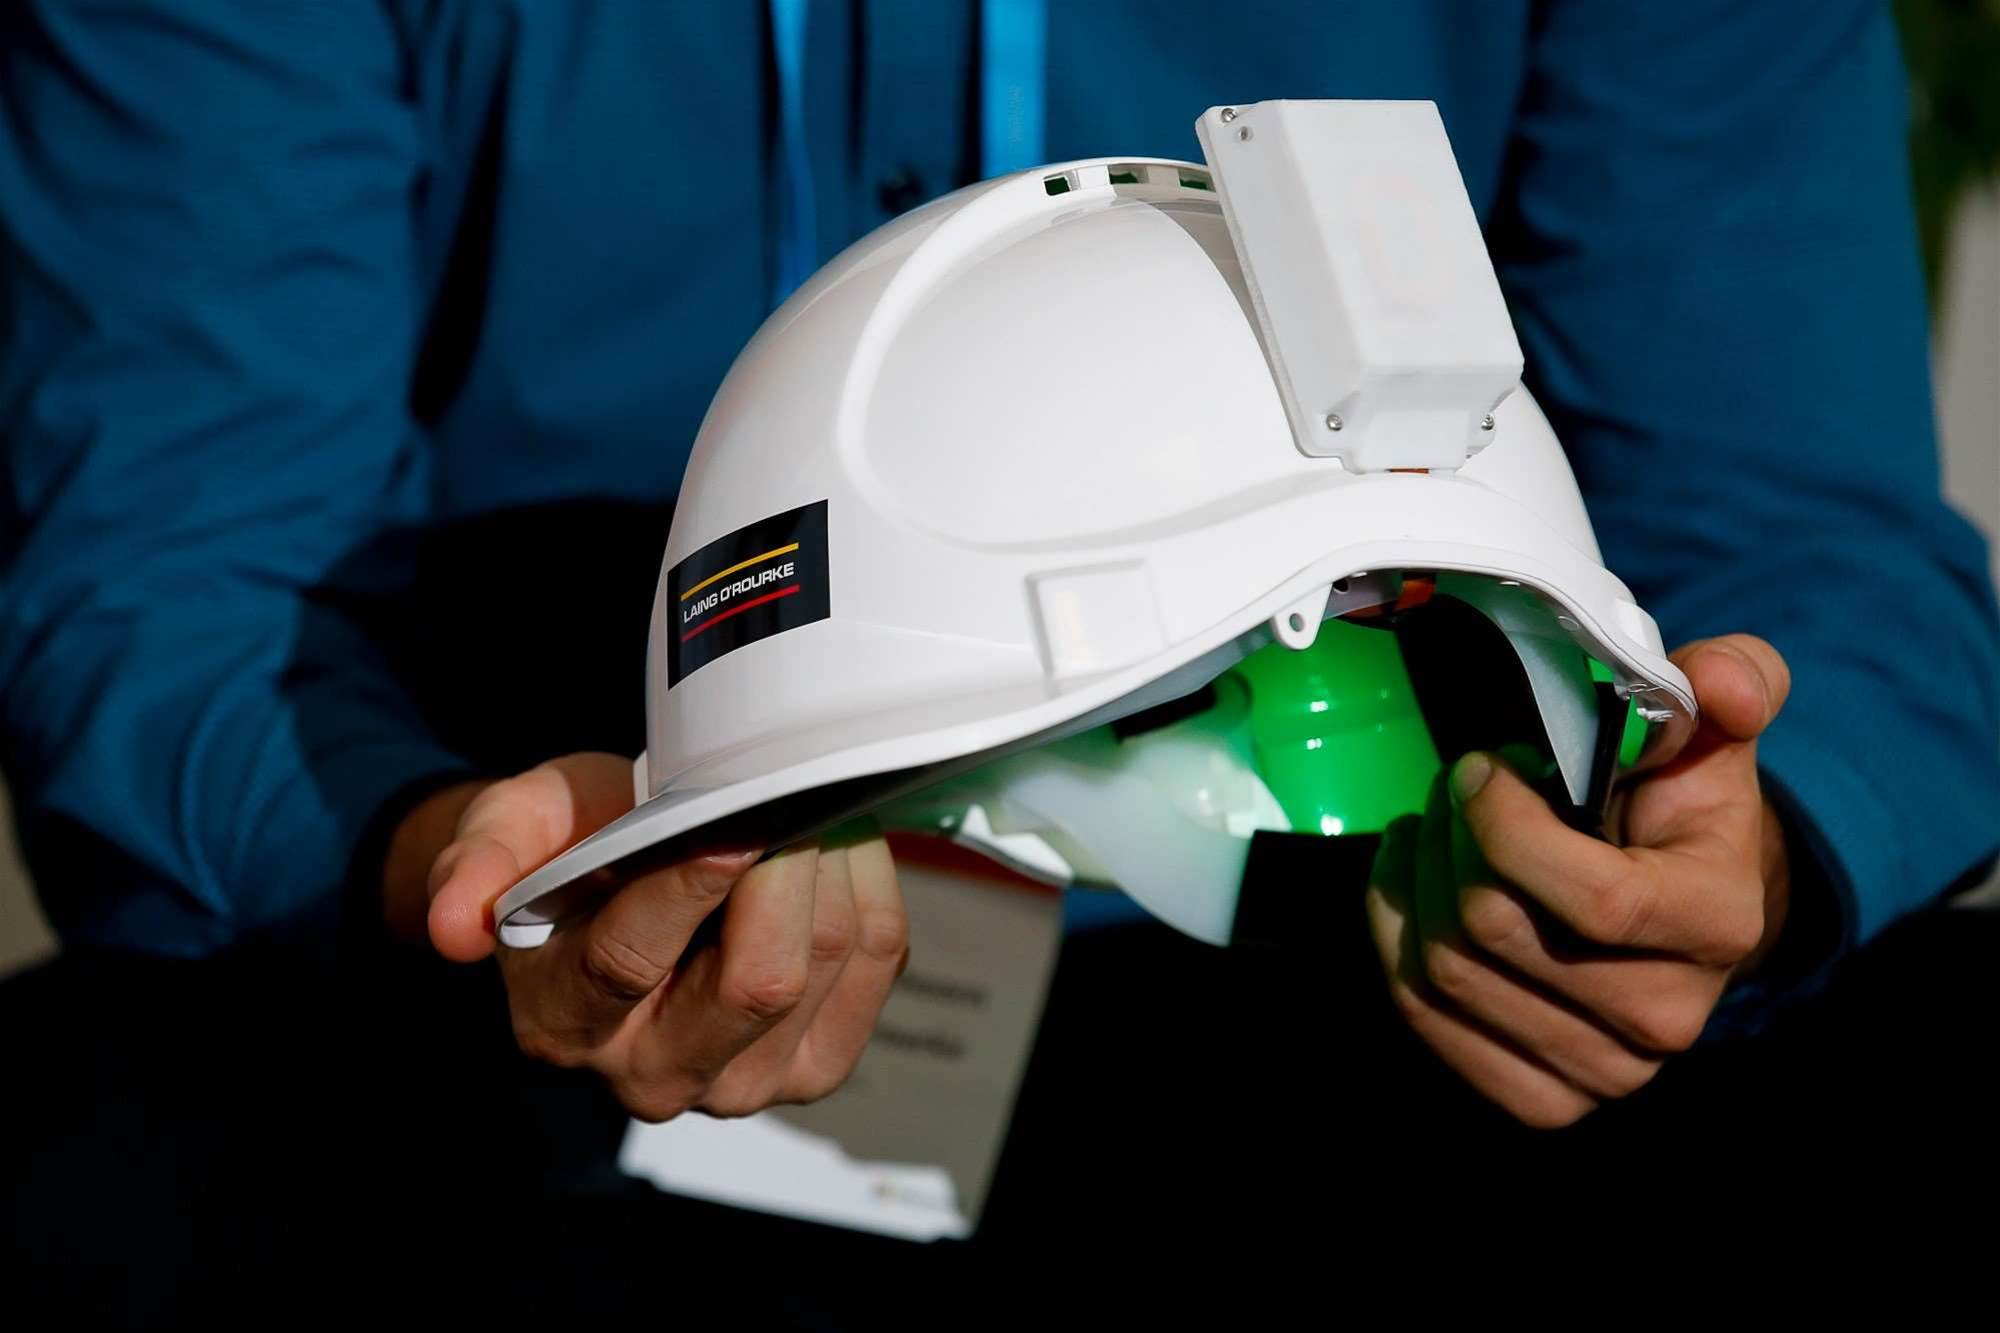 Laing O'Rourke brings IoT to hard hats